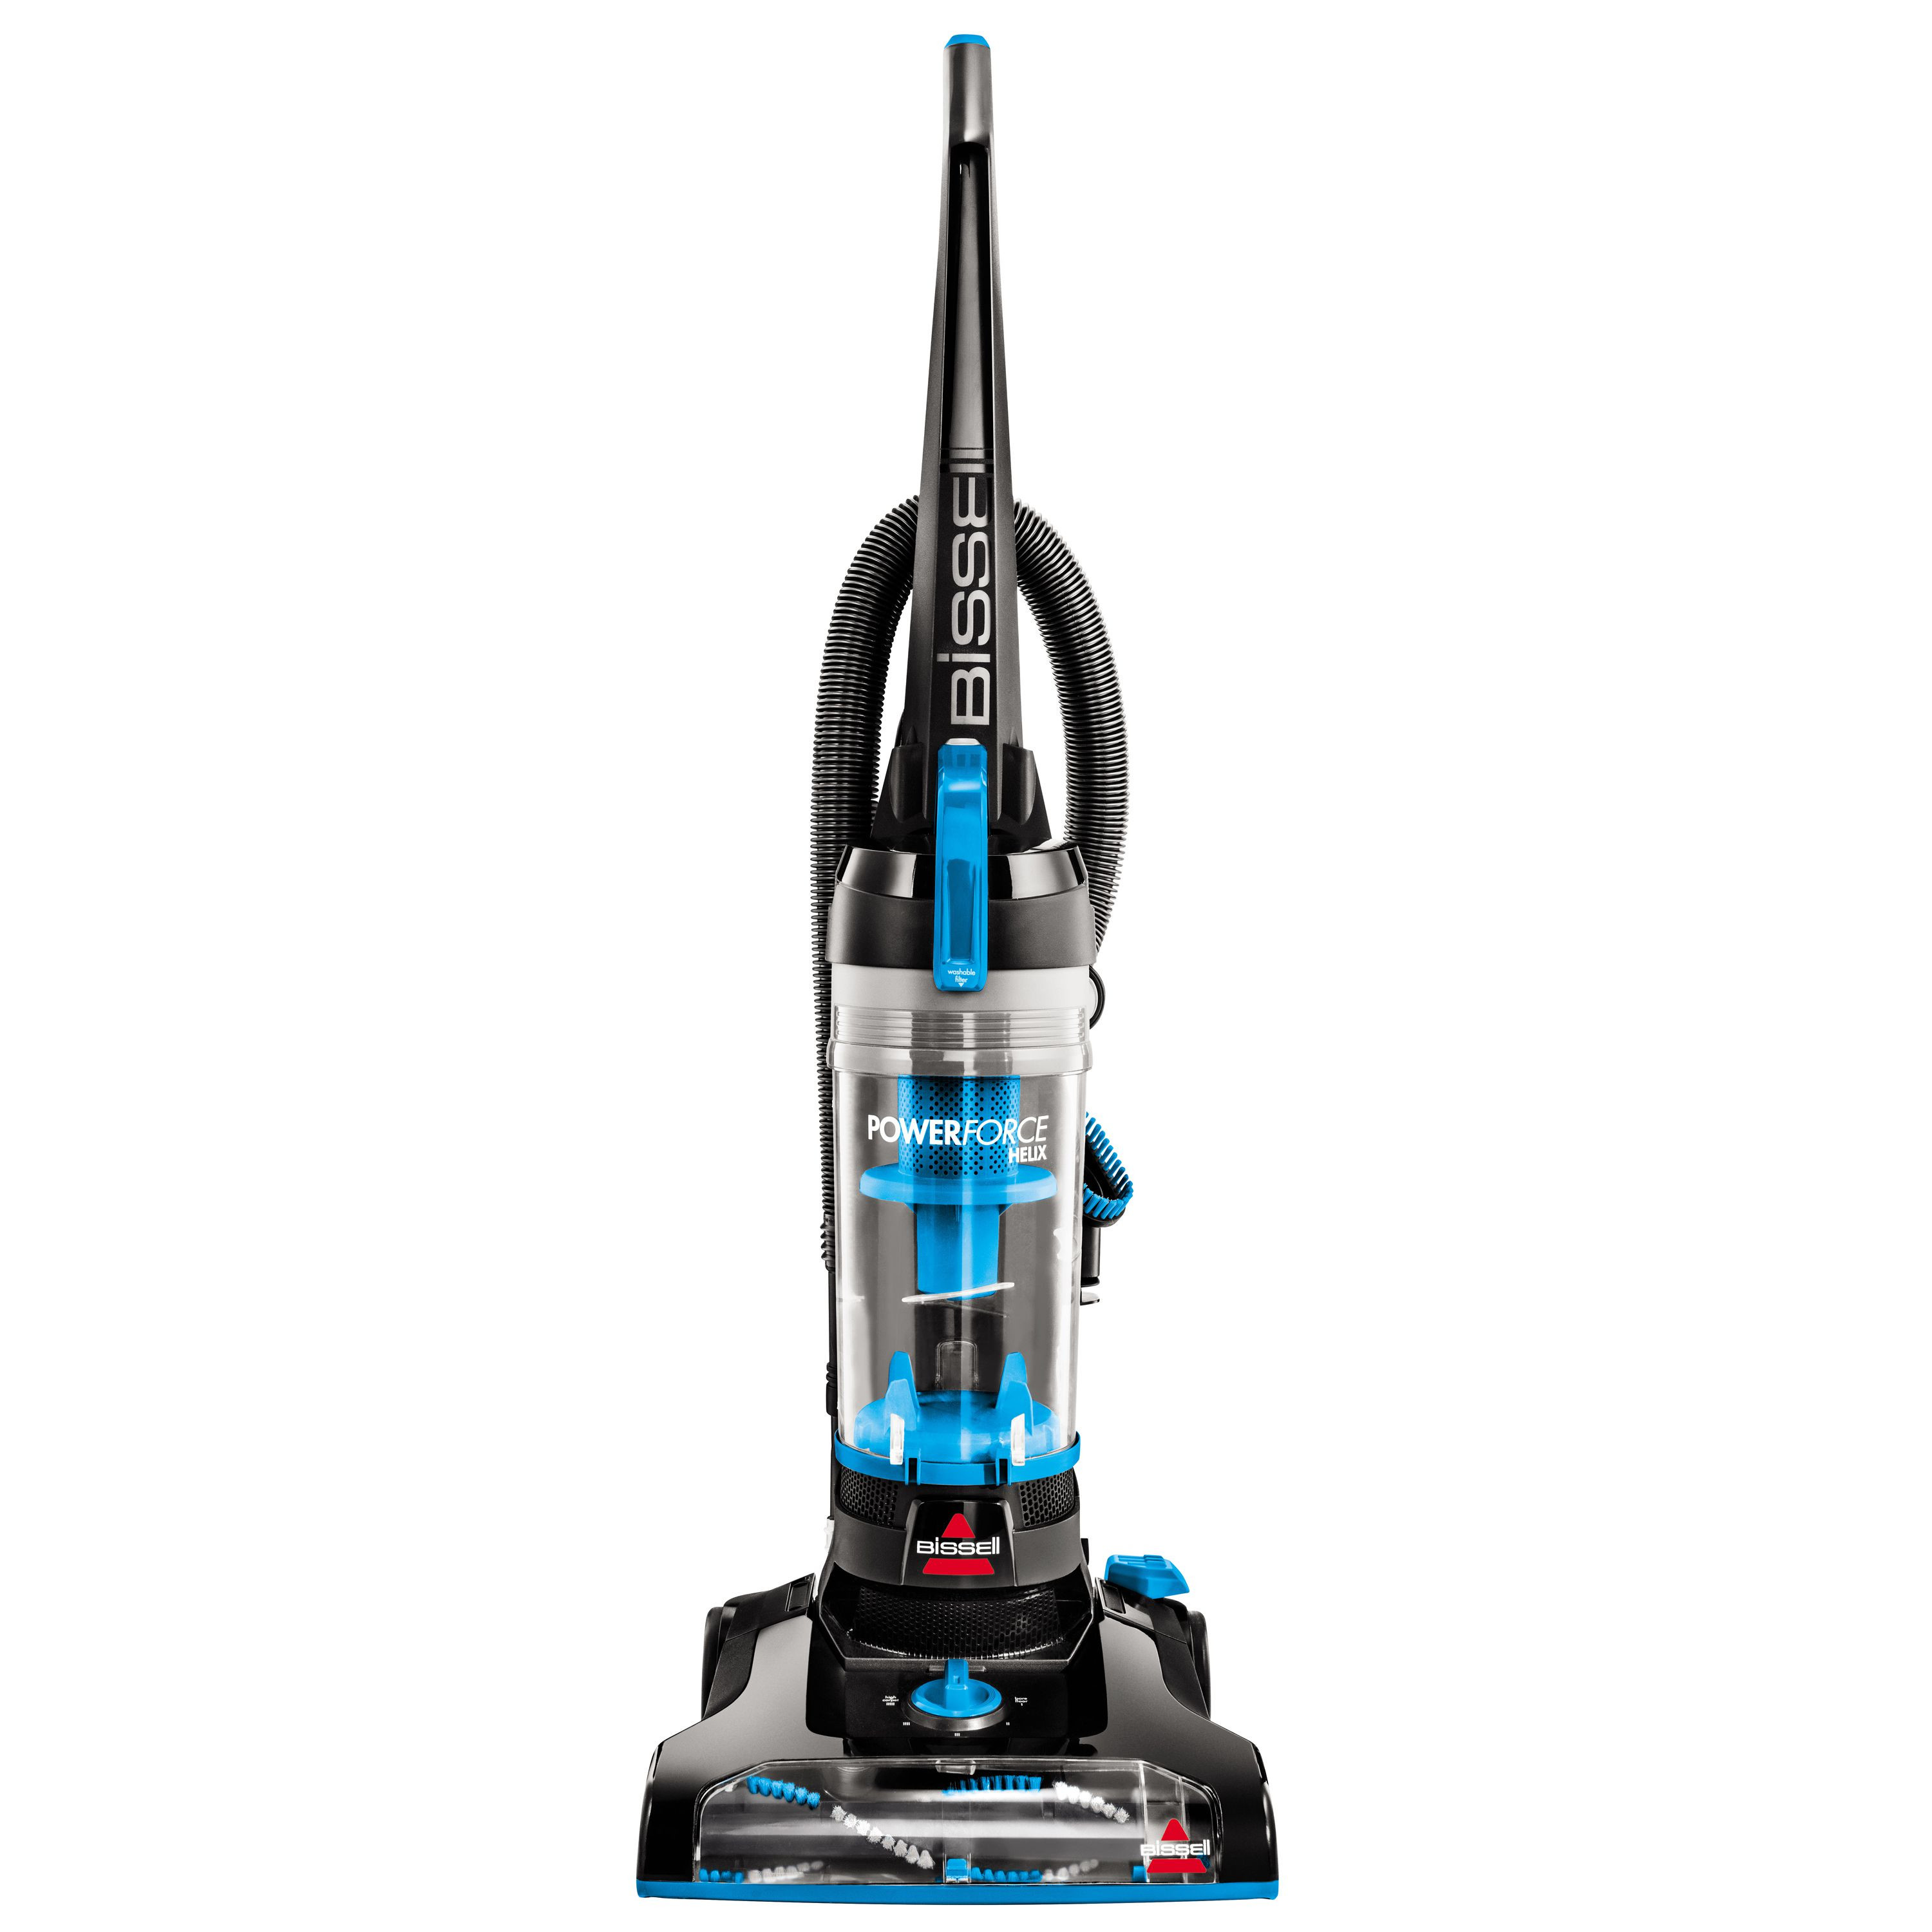 best vacuum for pet hair and hardwood floors 2016 of the 10 best vacuum cleaners to buy in 2018 in e4b12fd4 906f 4bf0 a270 afe8dc531860 1 c698176588ad49a4cf1bde639e9a838a 5bace08ac9e77c00257d9454